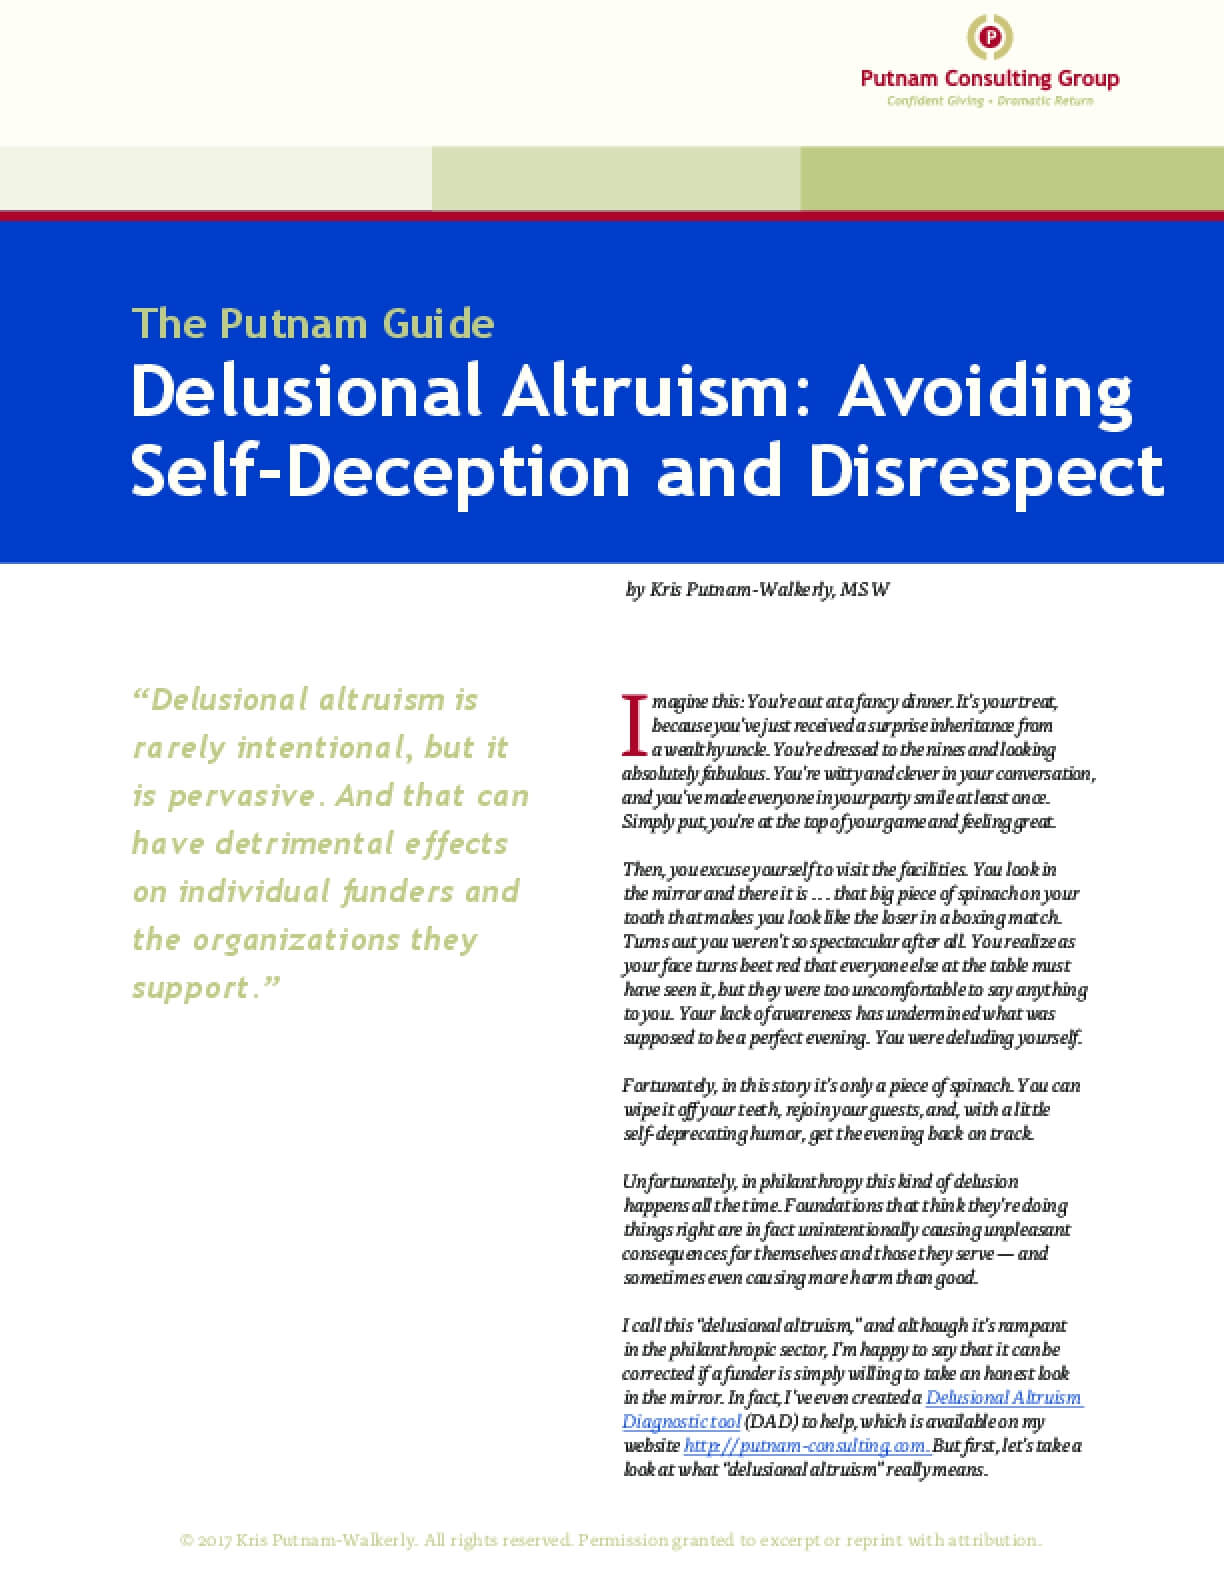 Delusional Altruism: Avoiding Self-Deception and Disrespect